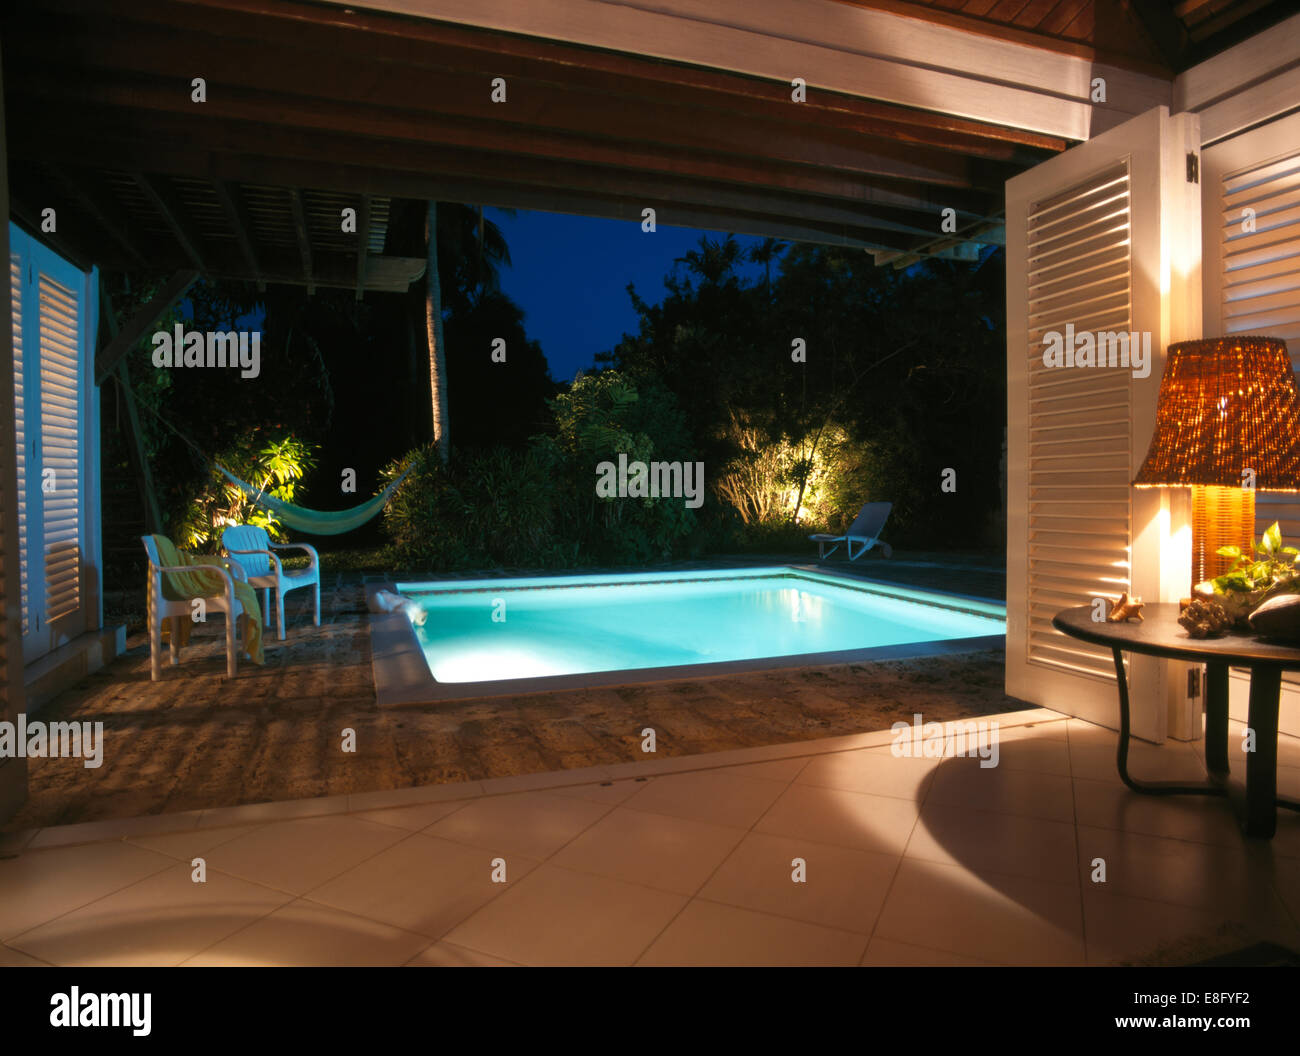 House Under Pool lighting around under-lit swimming pool in garden of modern house